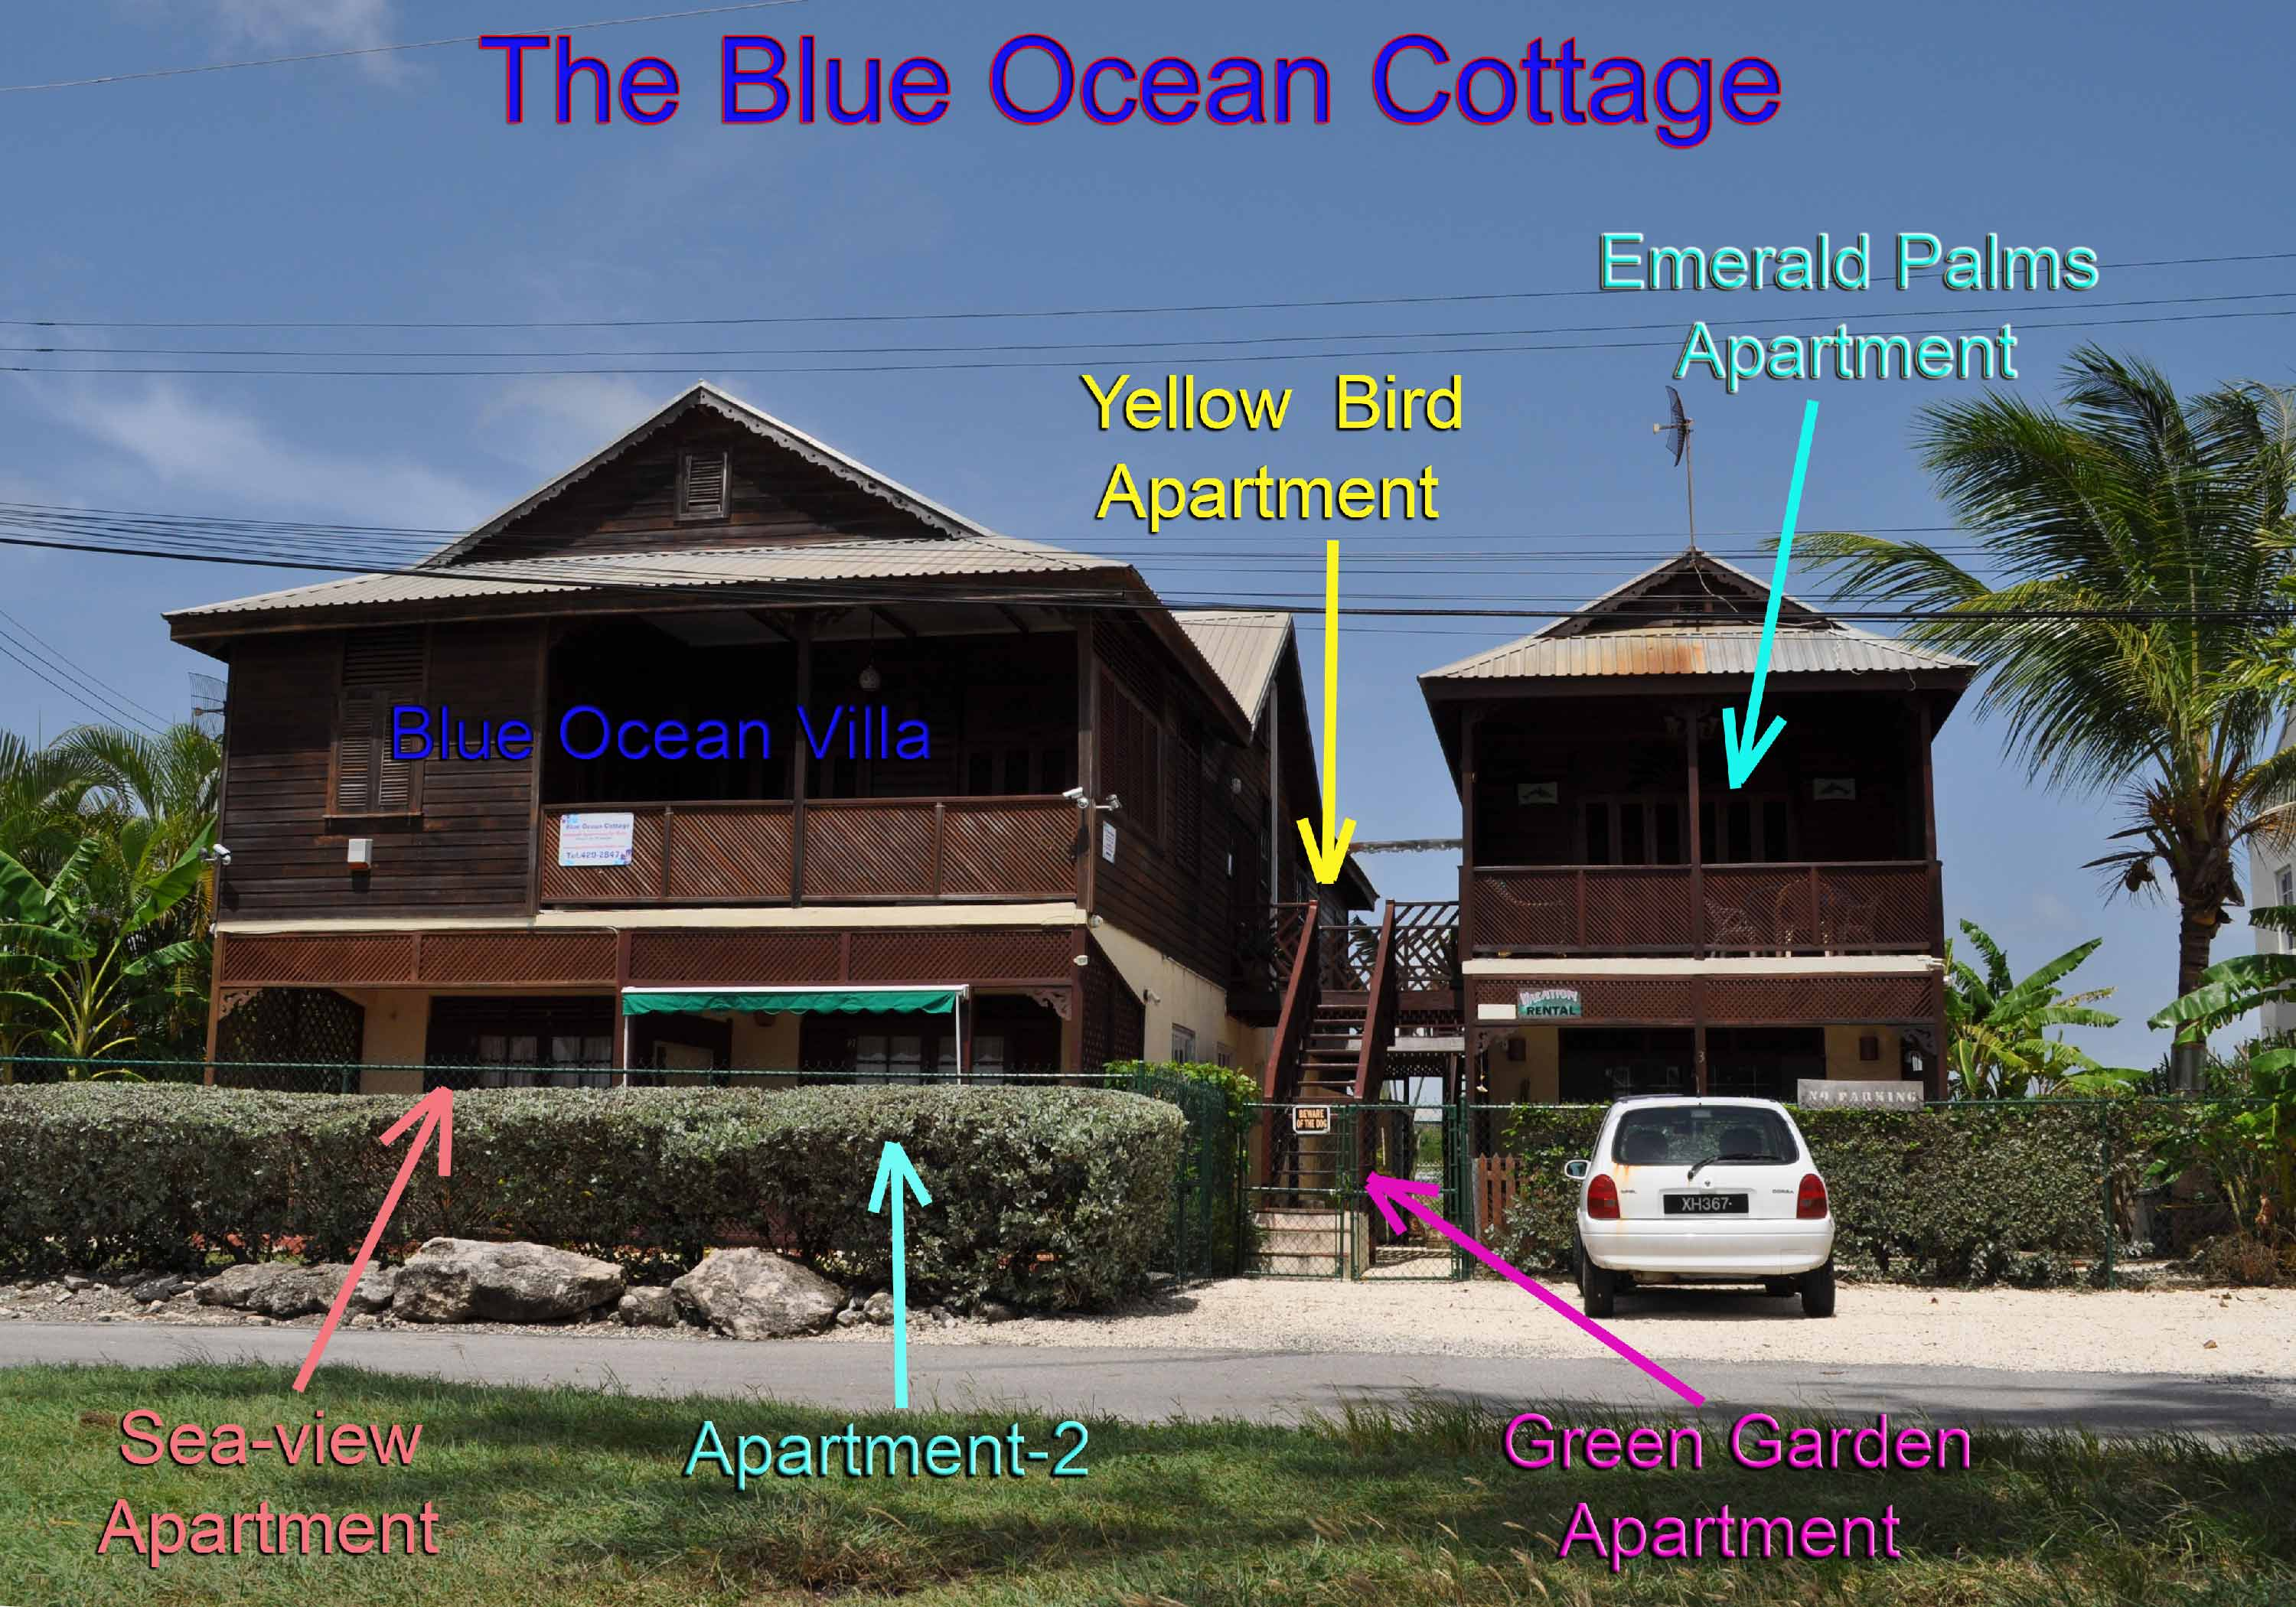 BlueOceanCottage_names